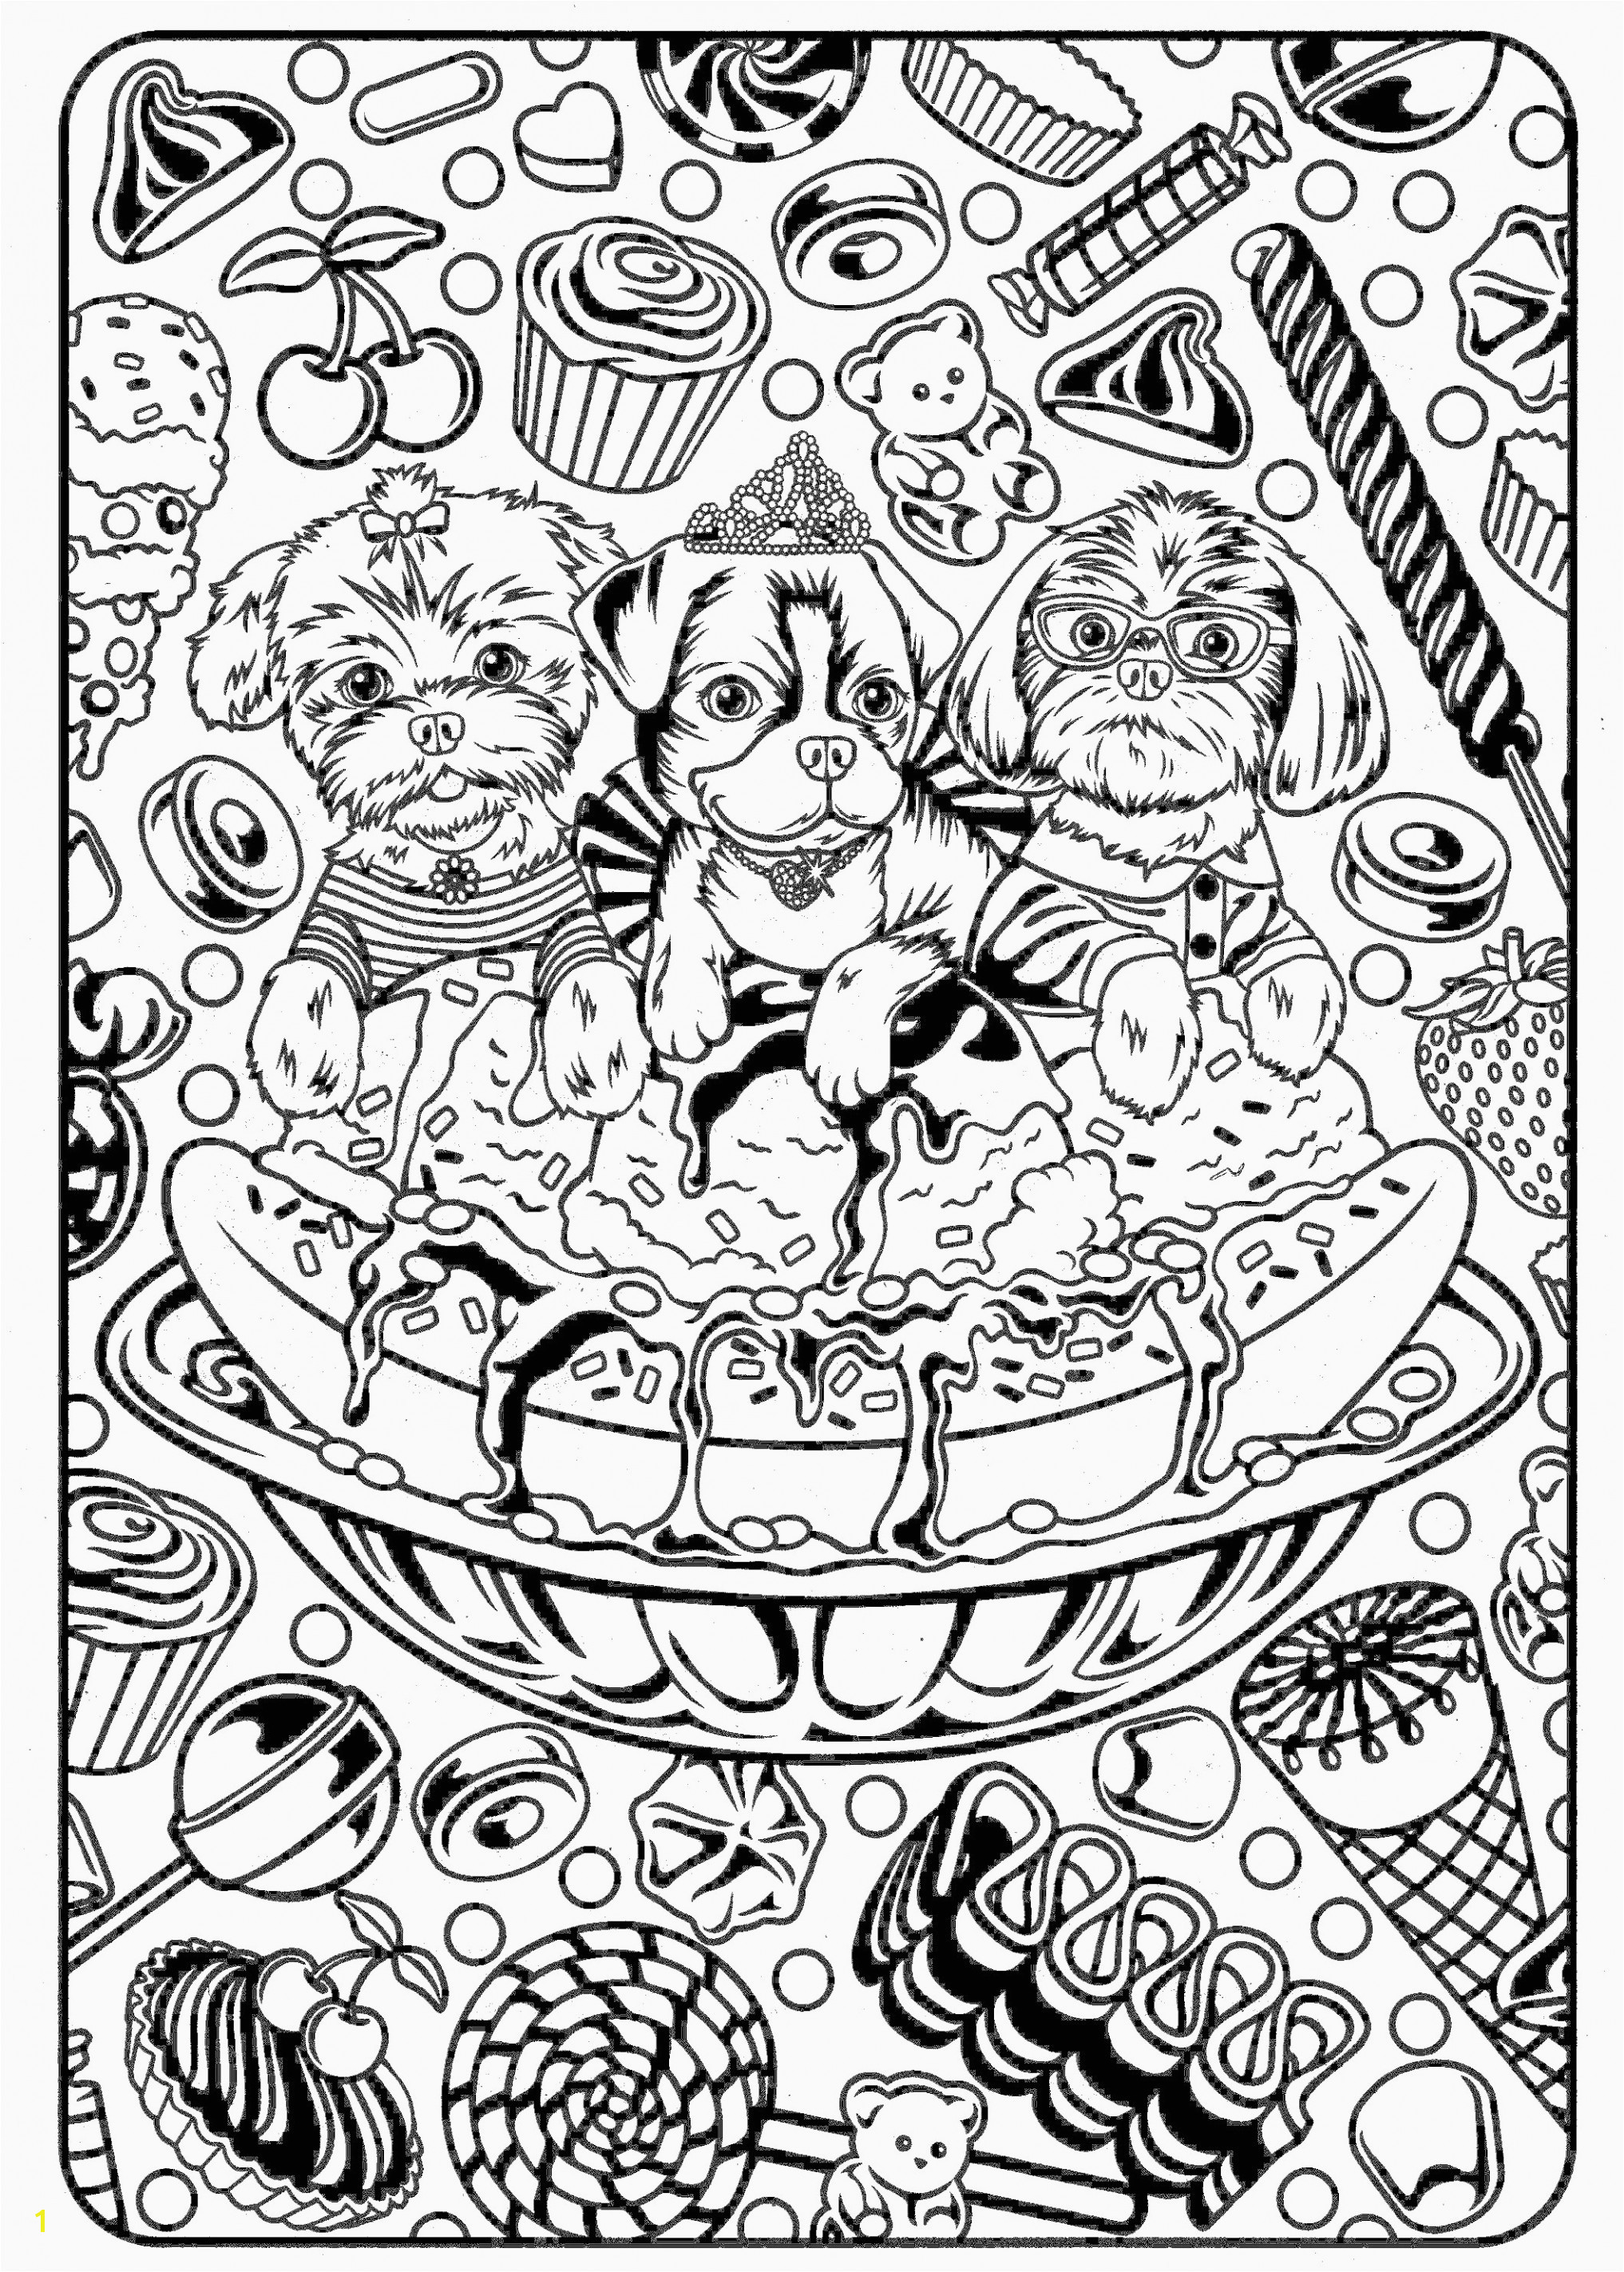 Disney Halloween Coloring Sheets Printable Home Coloring Pages Best Color Sheet 0d – Modokom – Fun